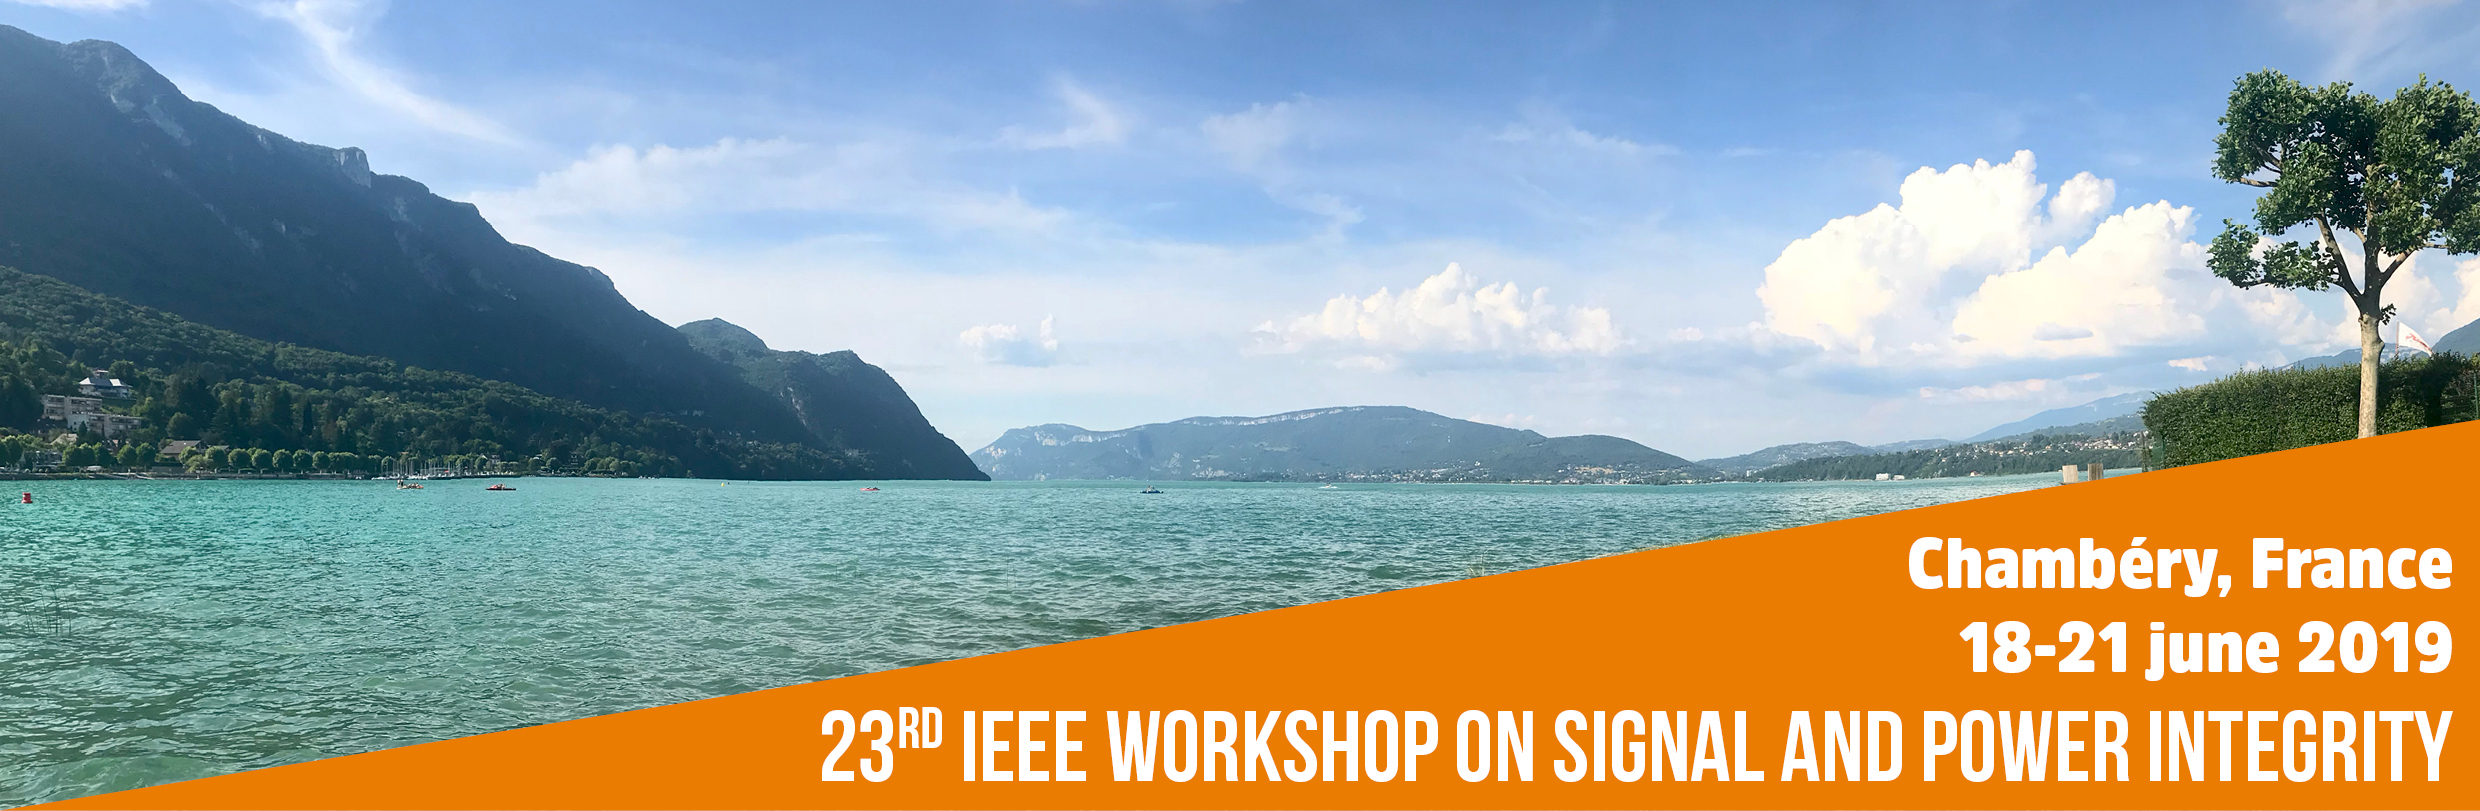 IEEE Workshop on Signal and Power Integrity (SPI)